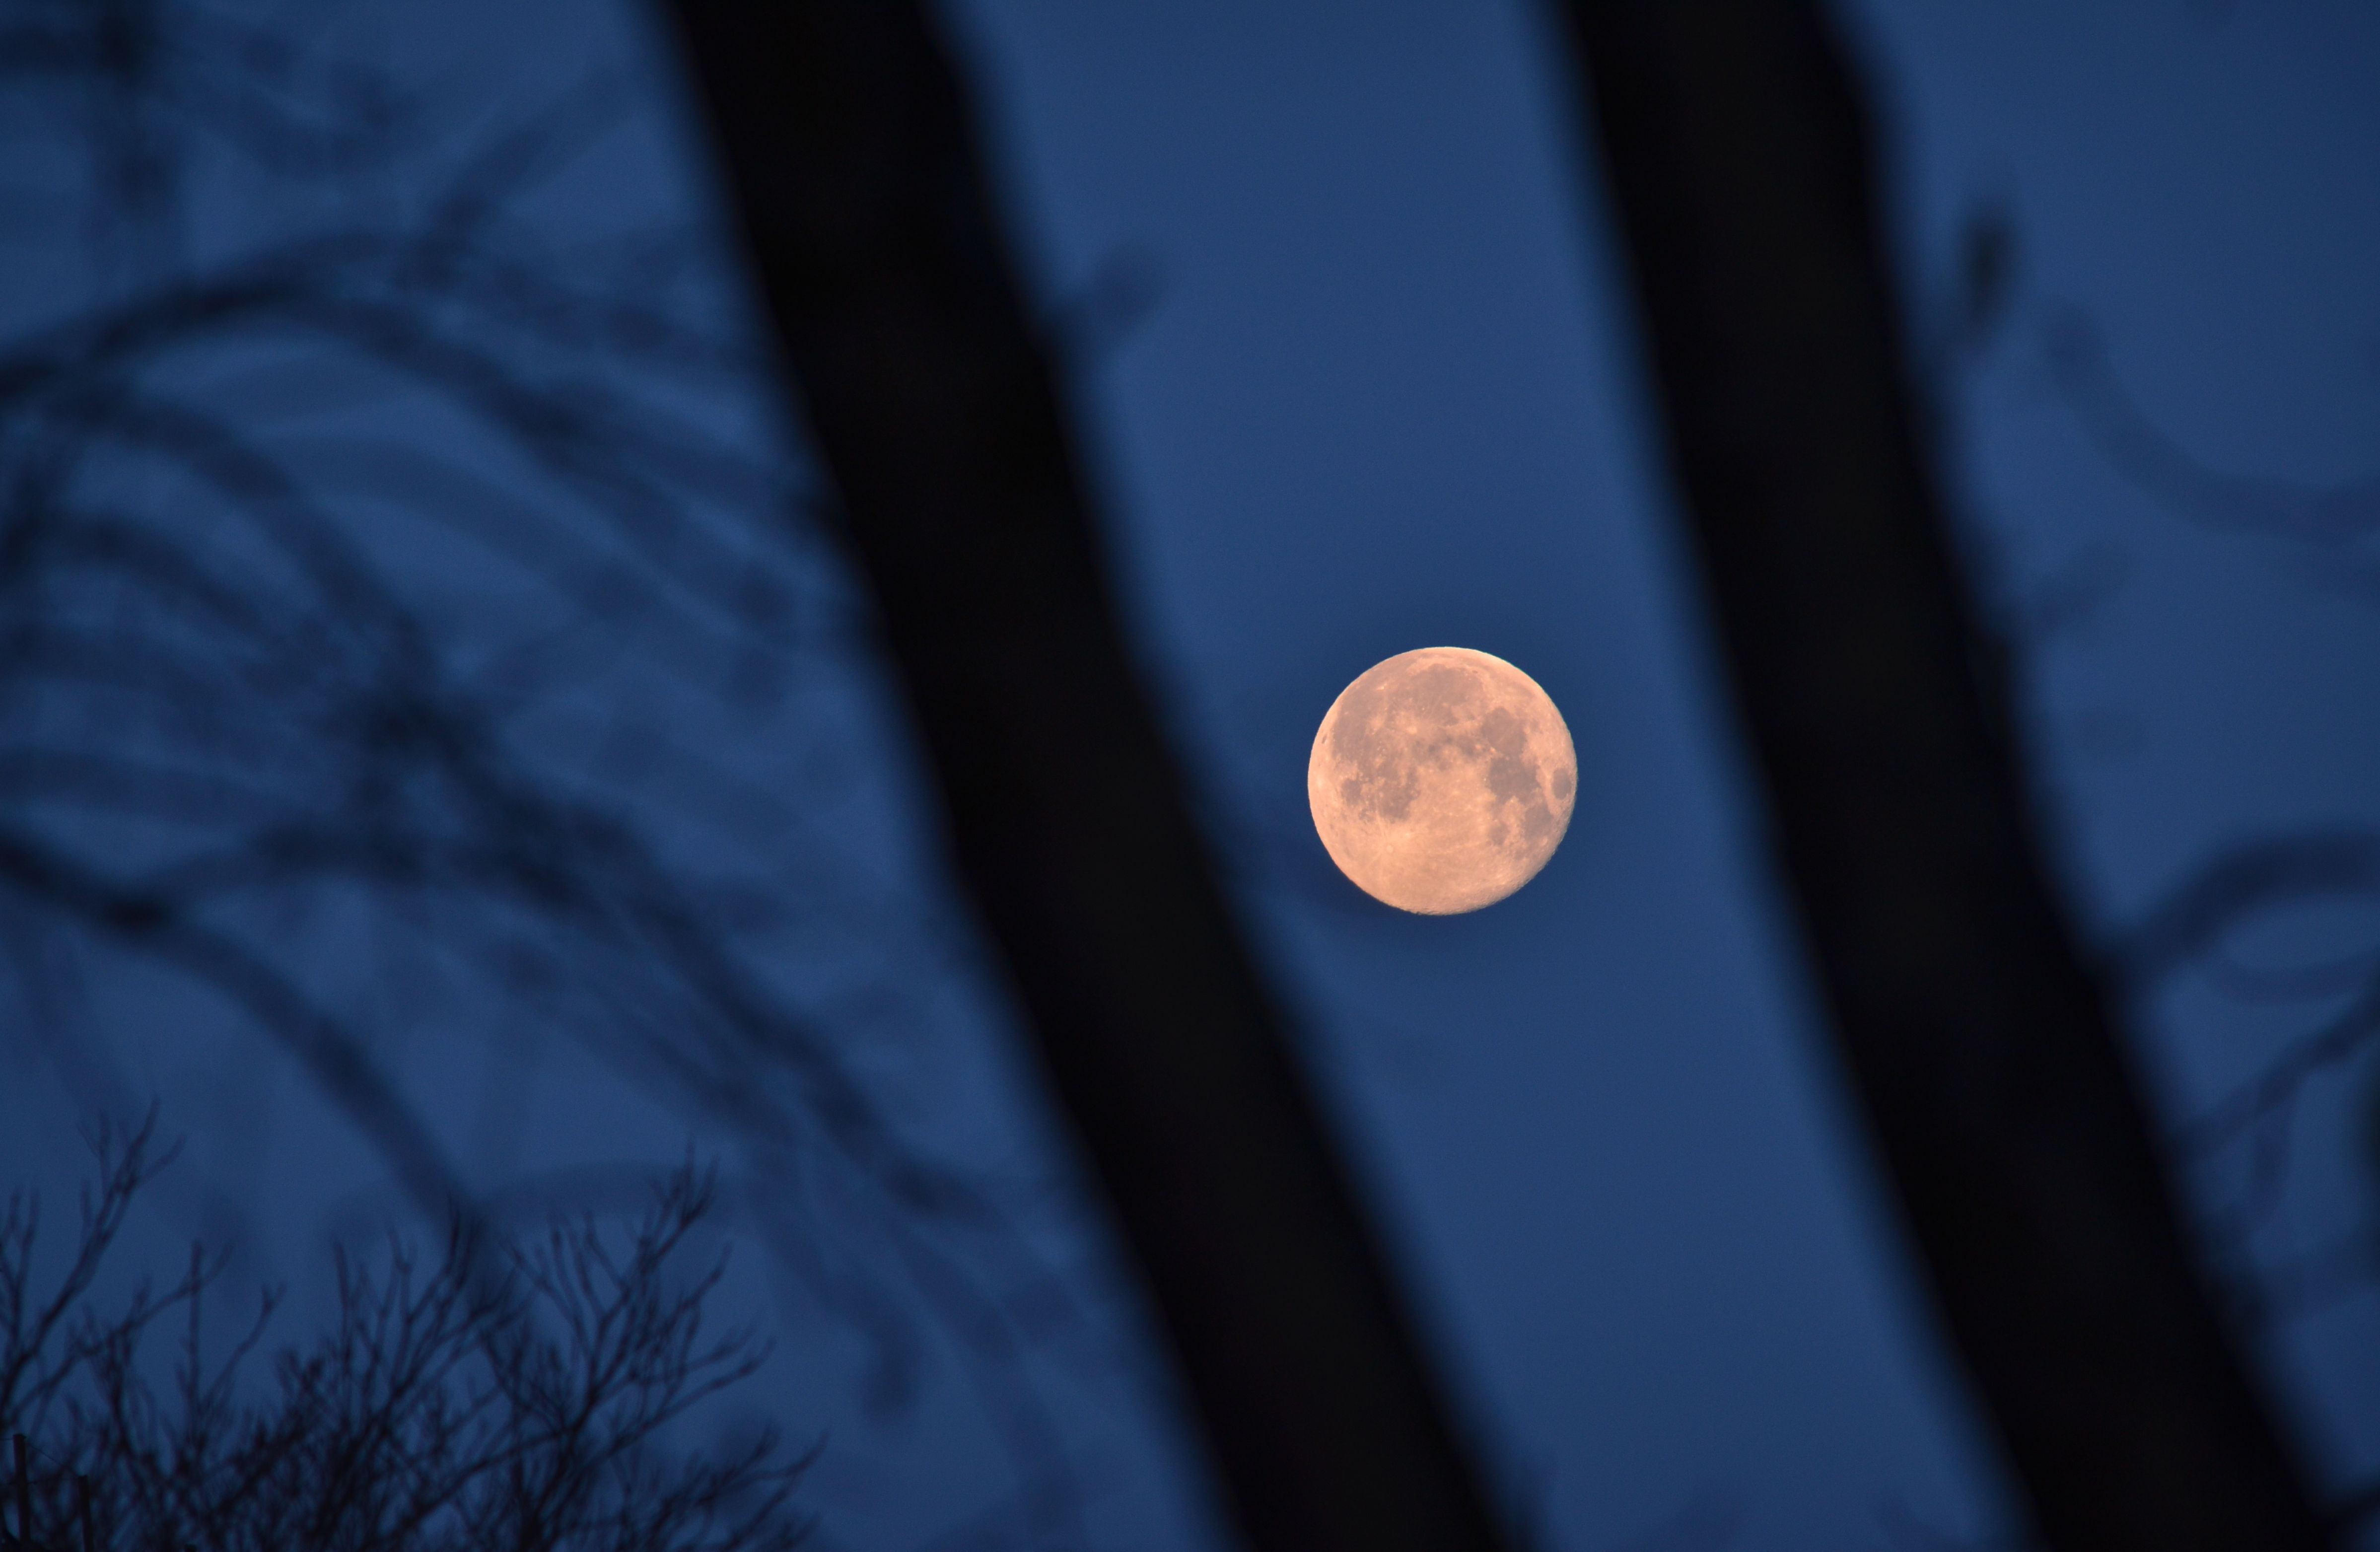 Super Worm Moon: When to see the spectacular March 2019 full moon